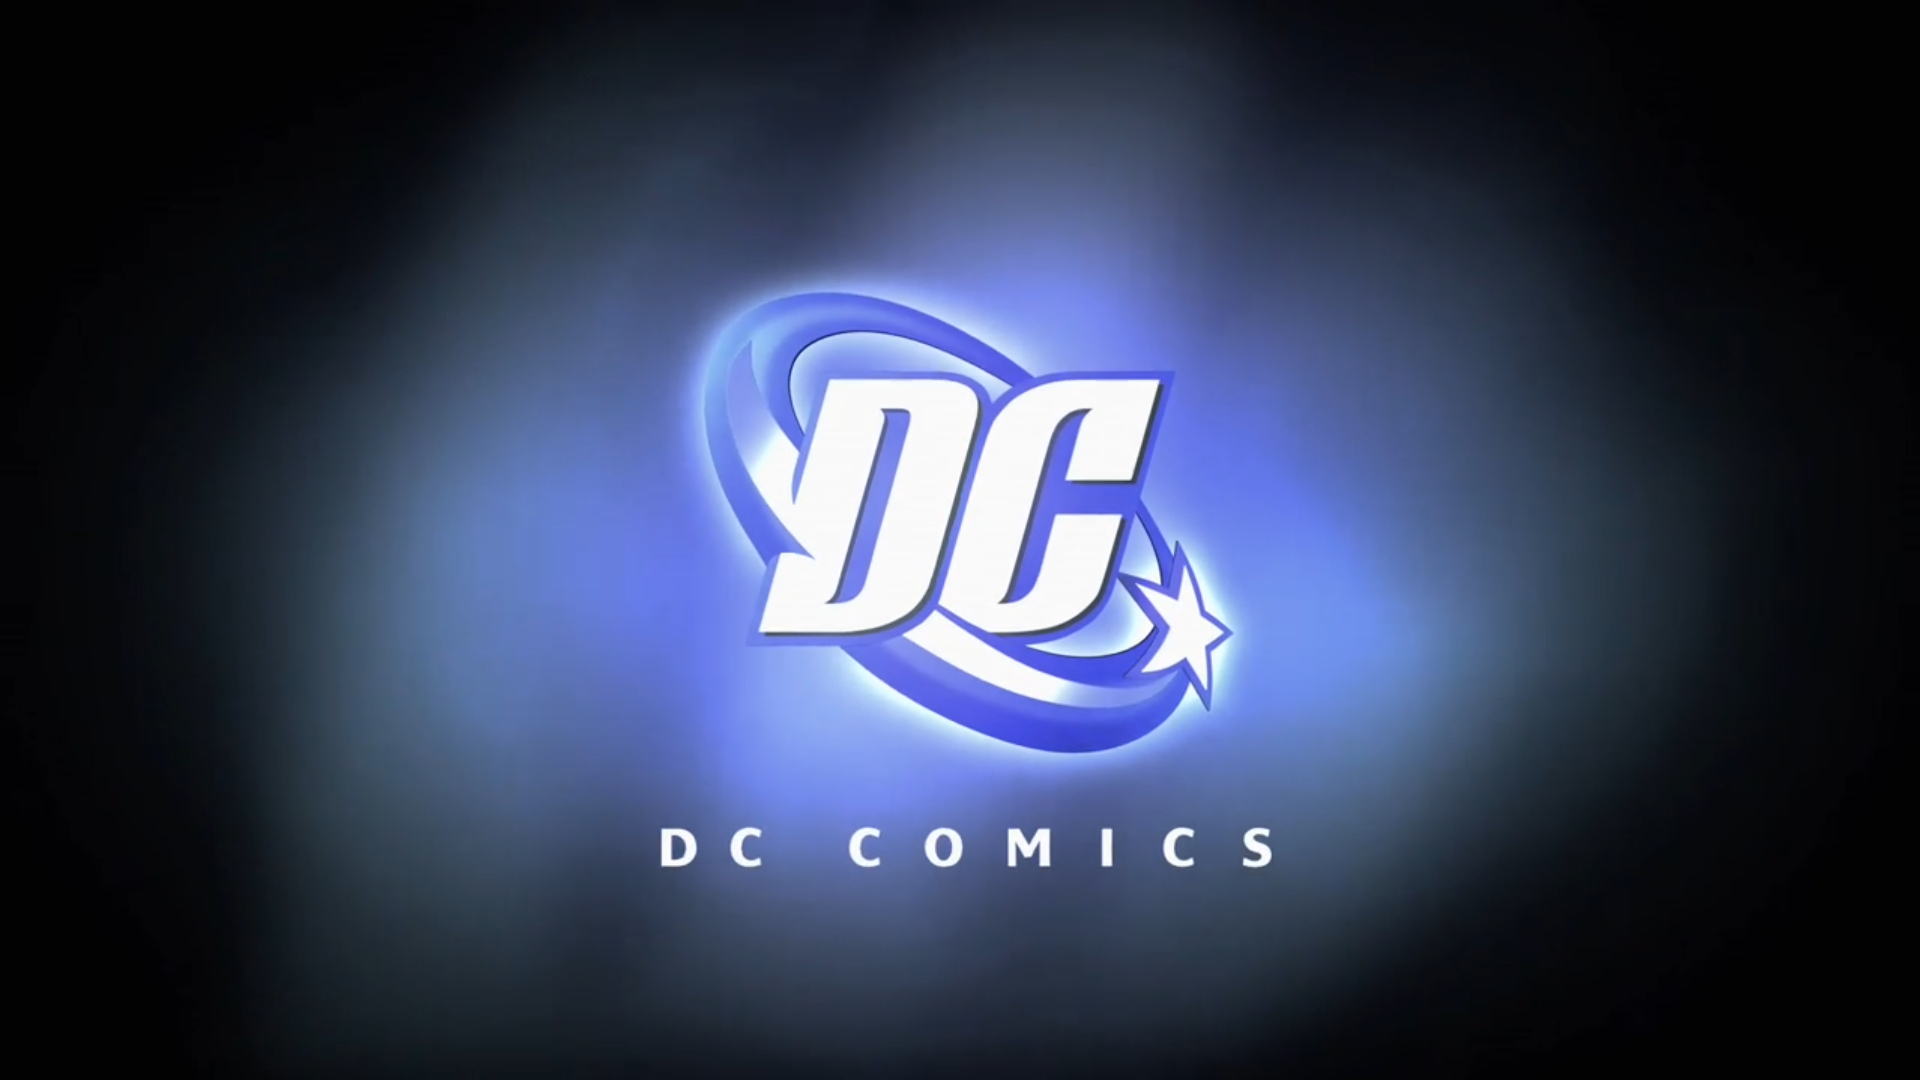 dc comics logo hd wallpaper | wallpapers.gg